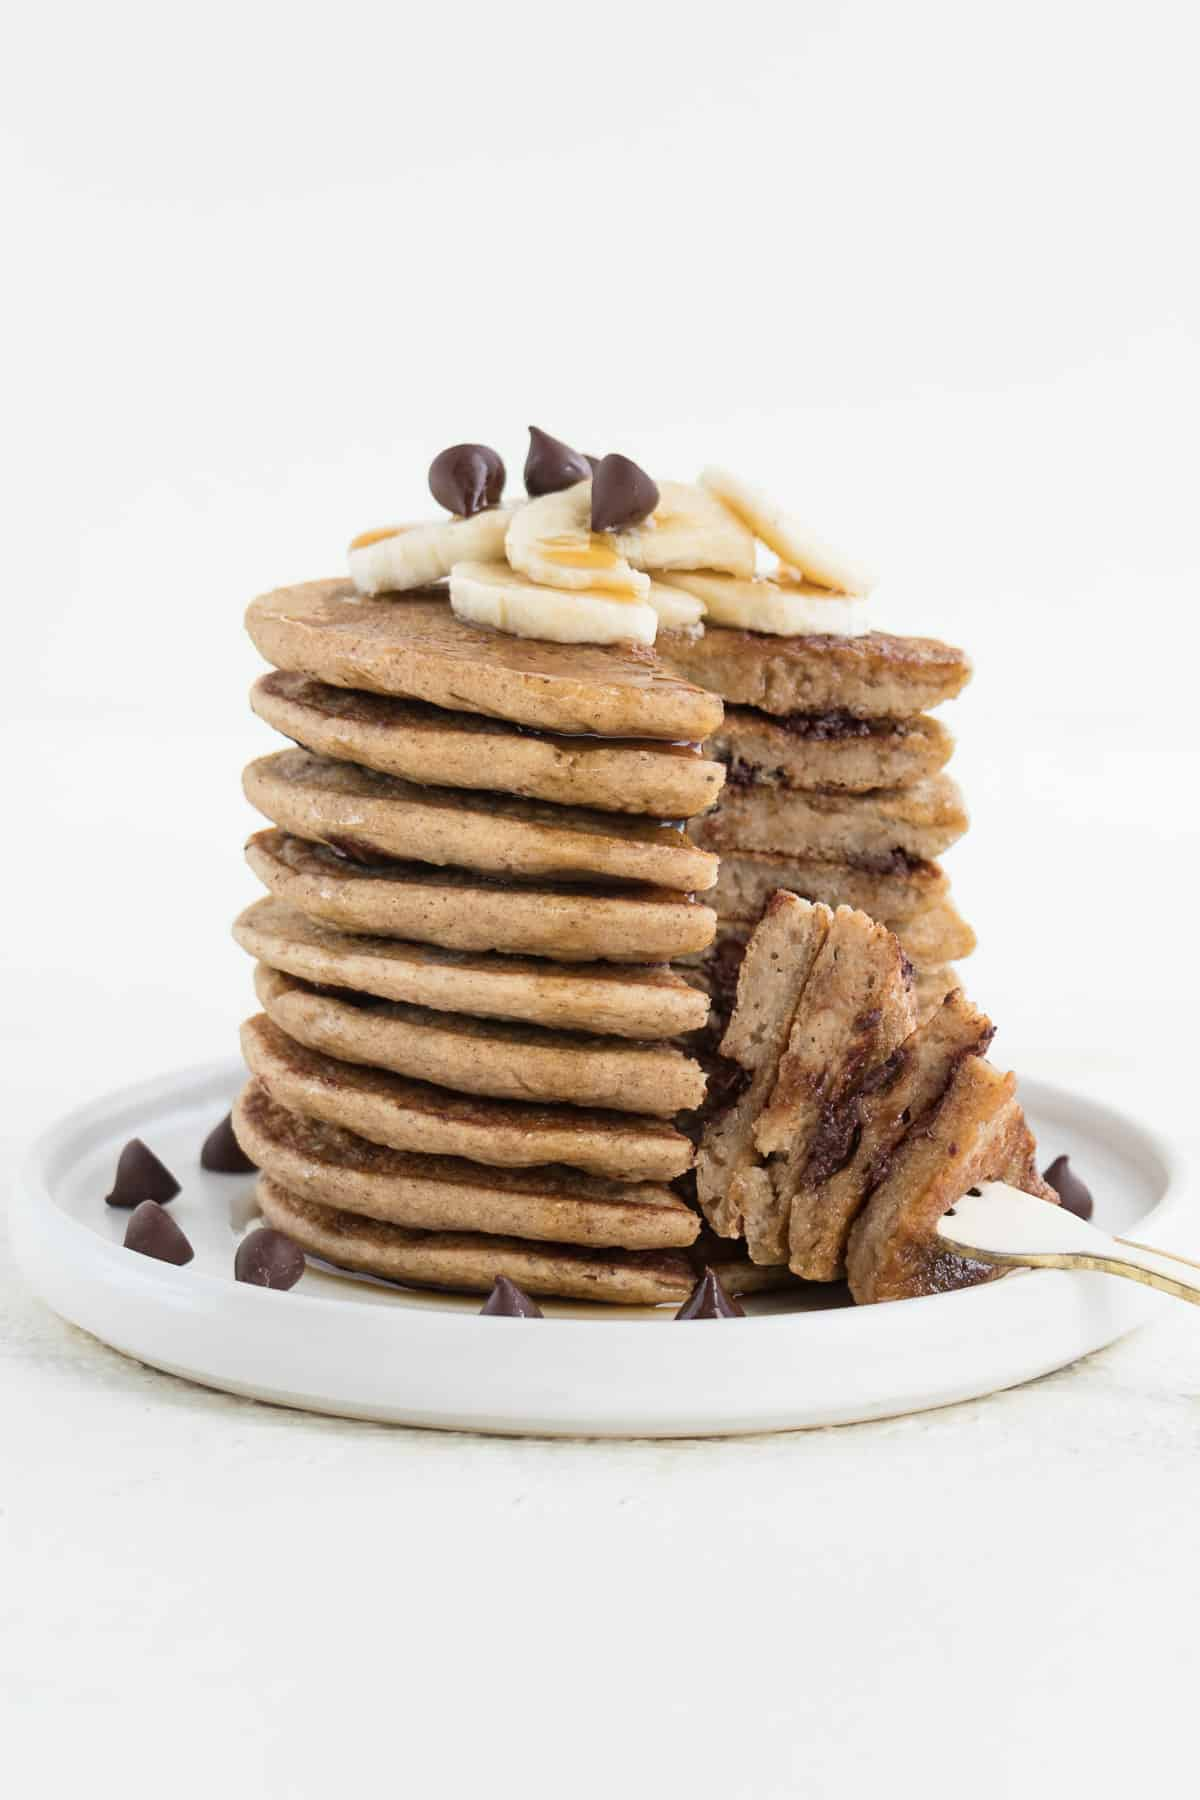 a fork cutting into a stack of vegan banana pancakes